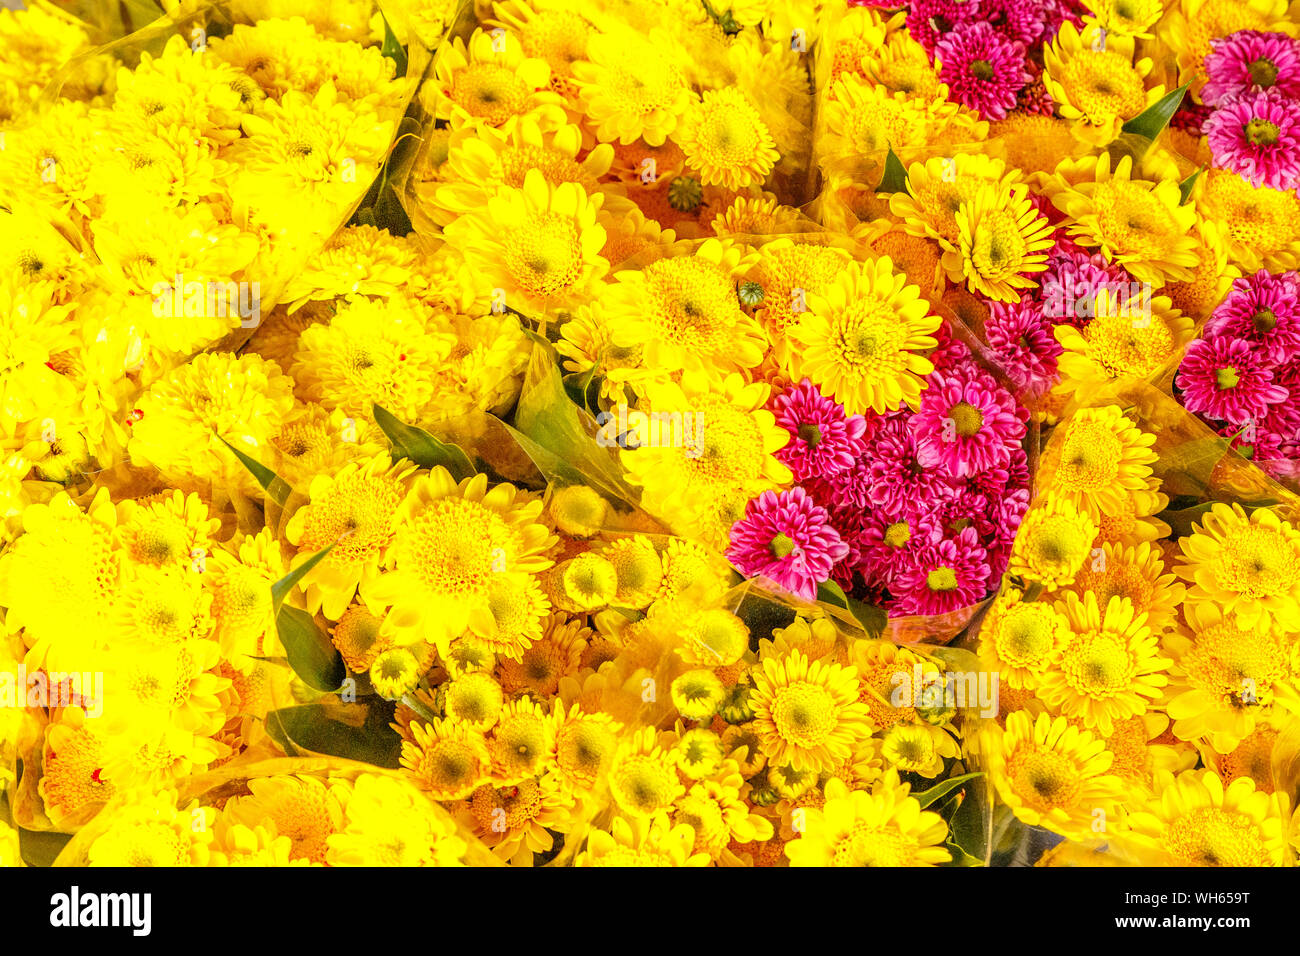 Yellow and pink chrysanthemums at Pak Khlong Talat, famous flower market in Bangkok, Thailand. Stock Photo